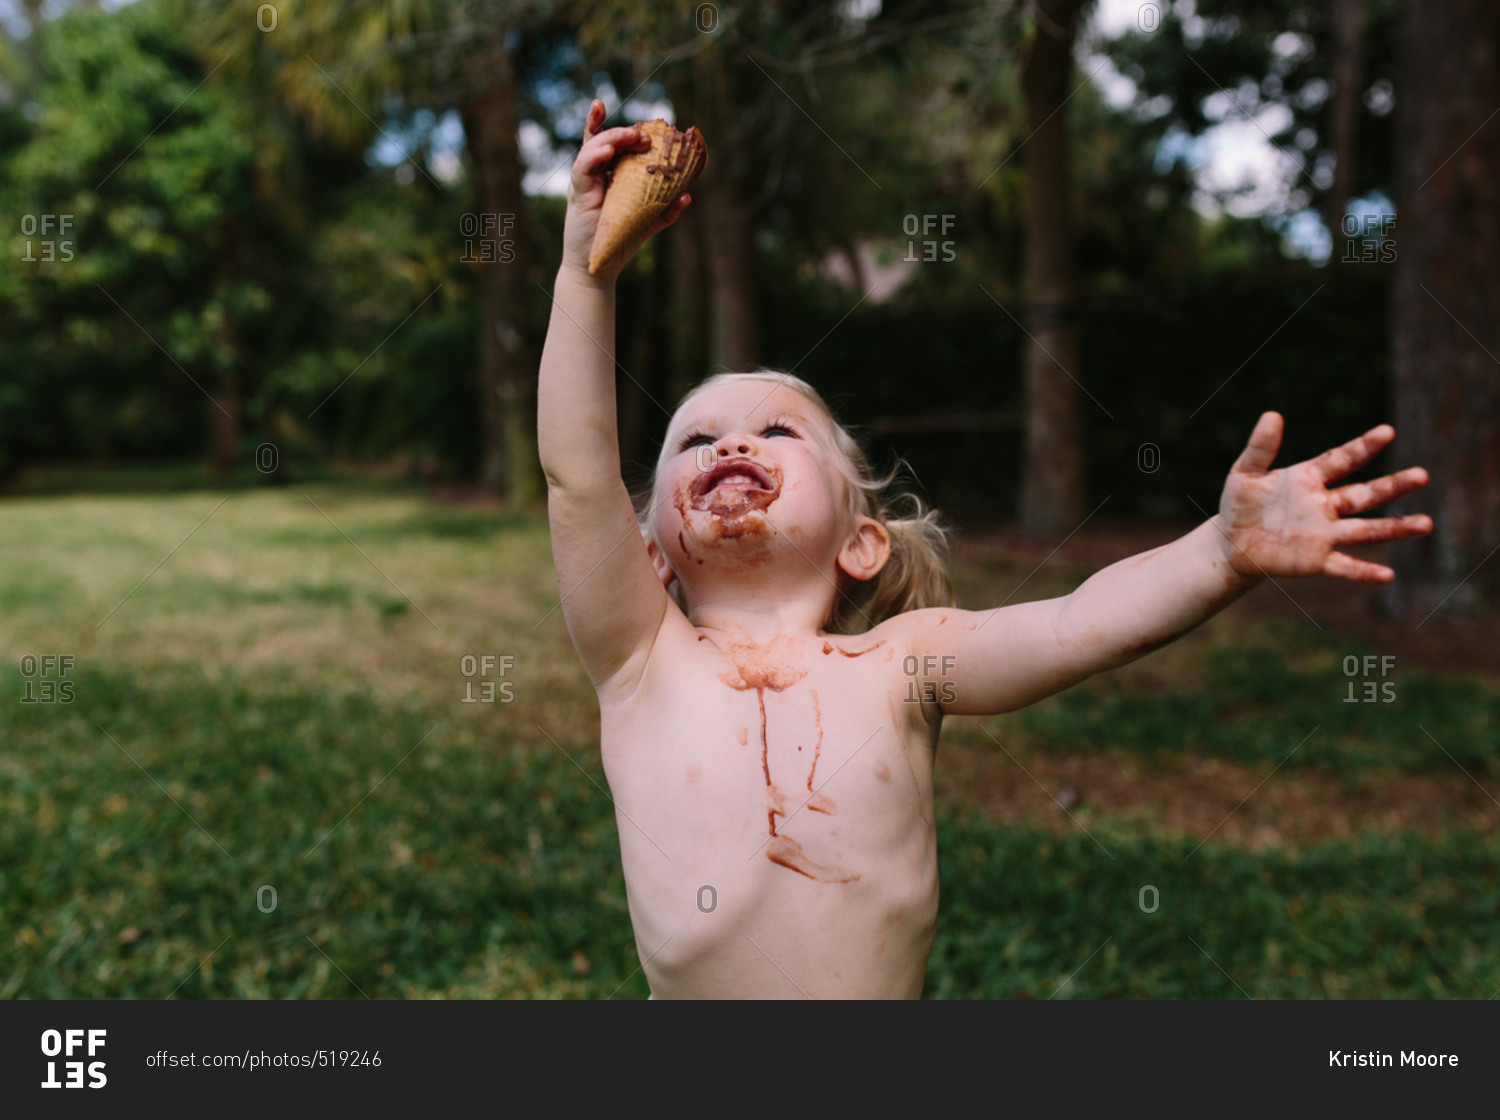 Cute toddler girl with melting ice cream cone in backyard